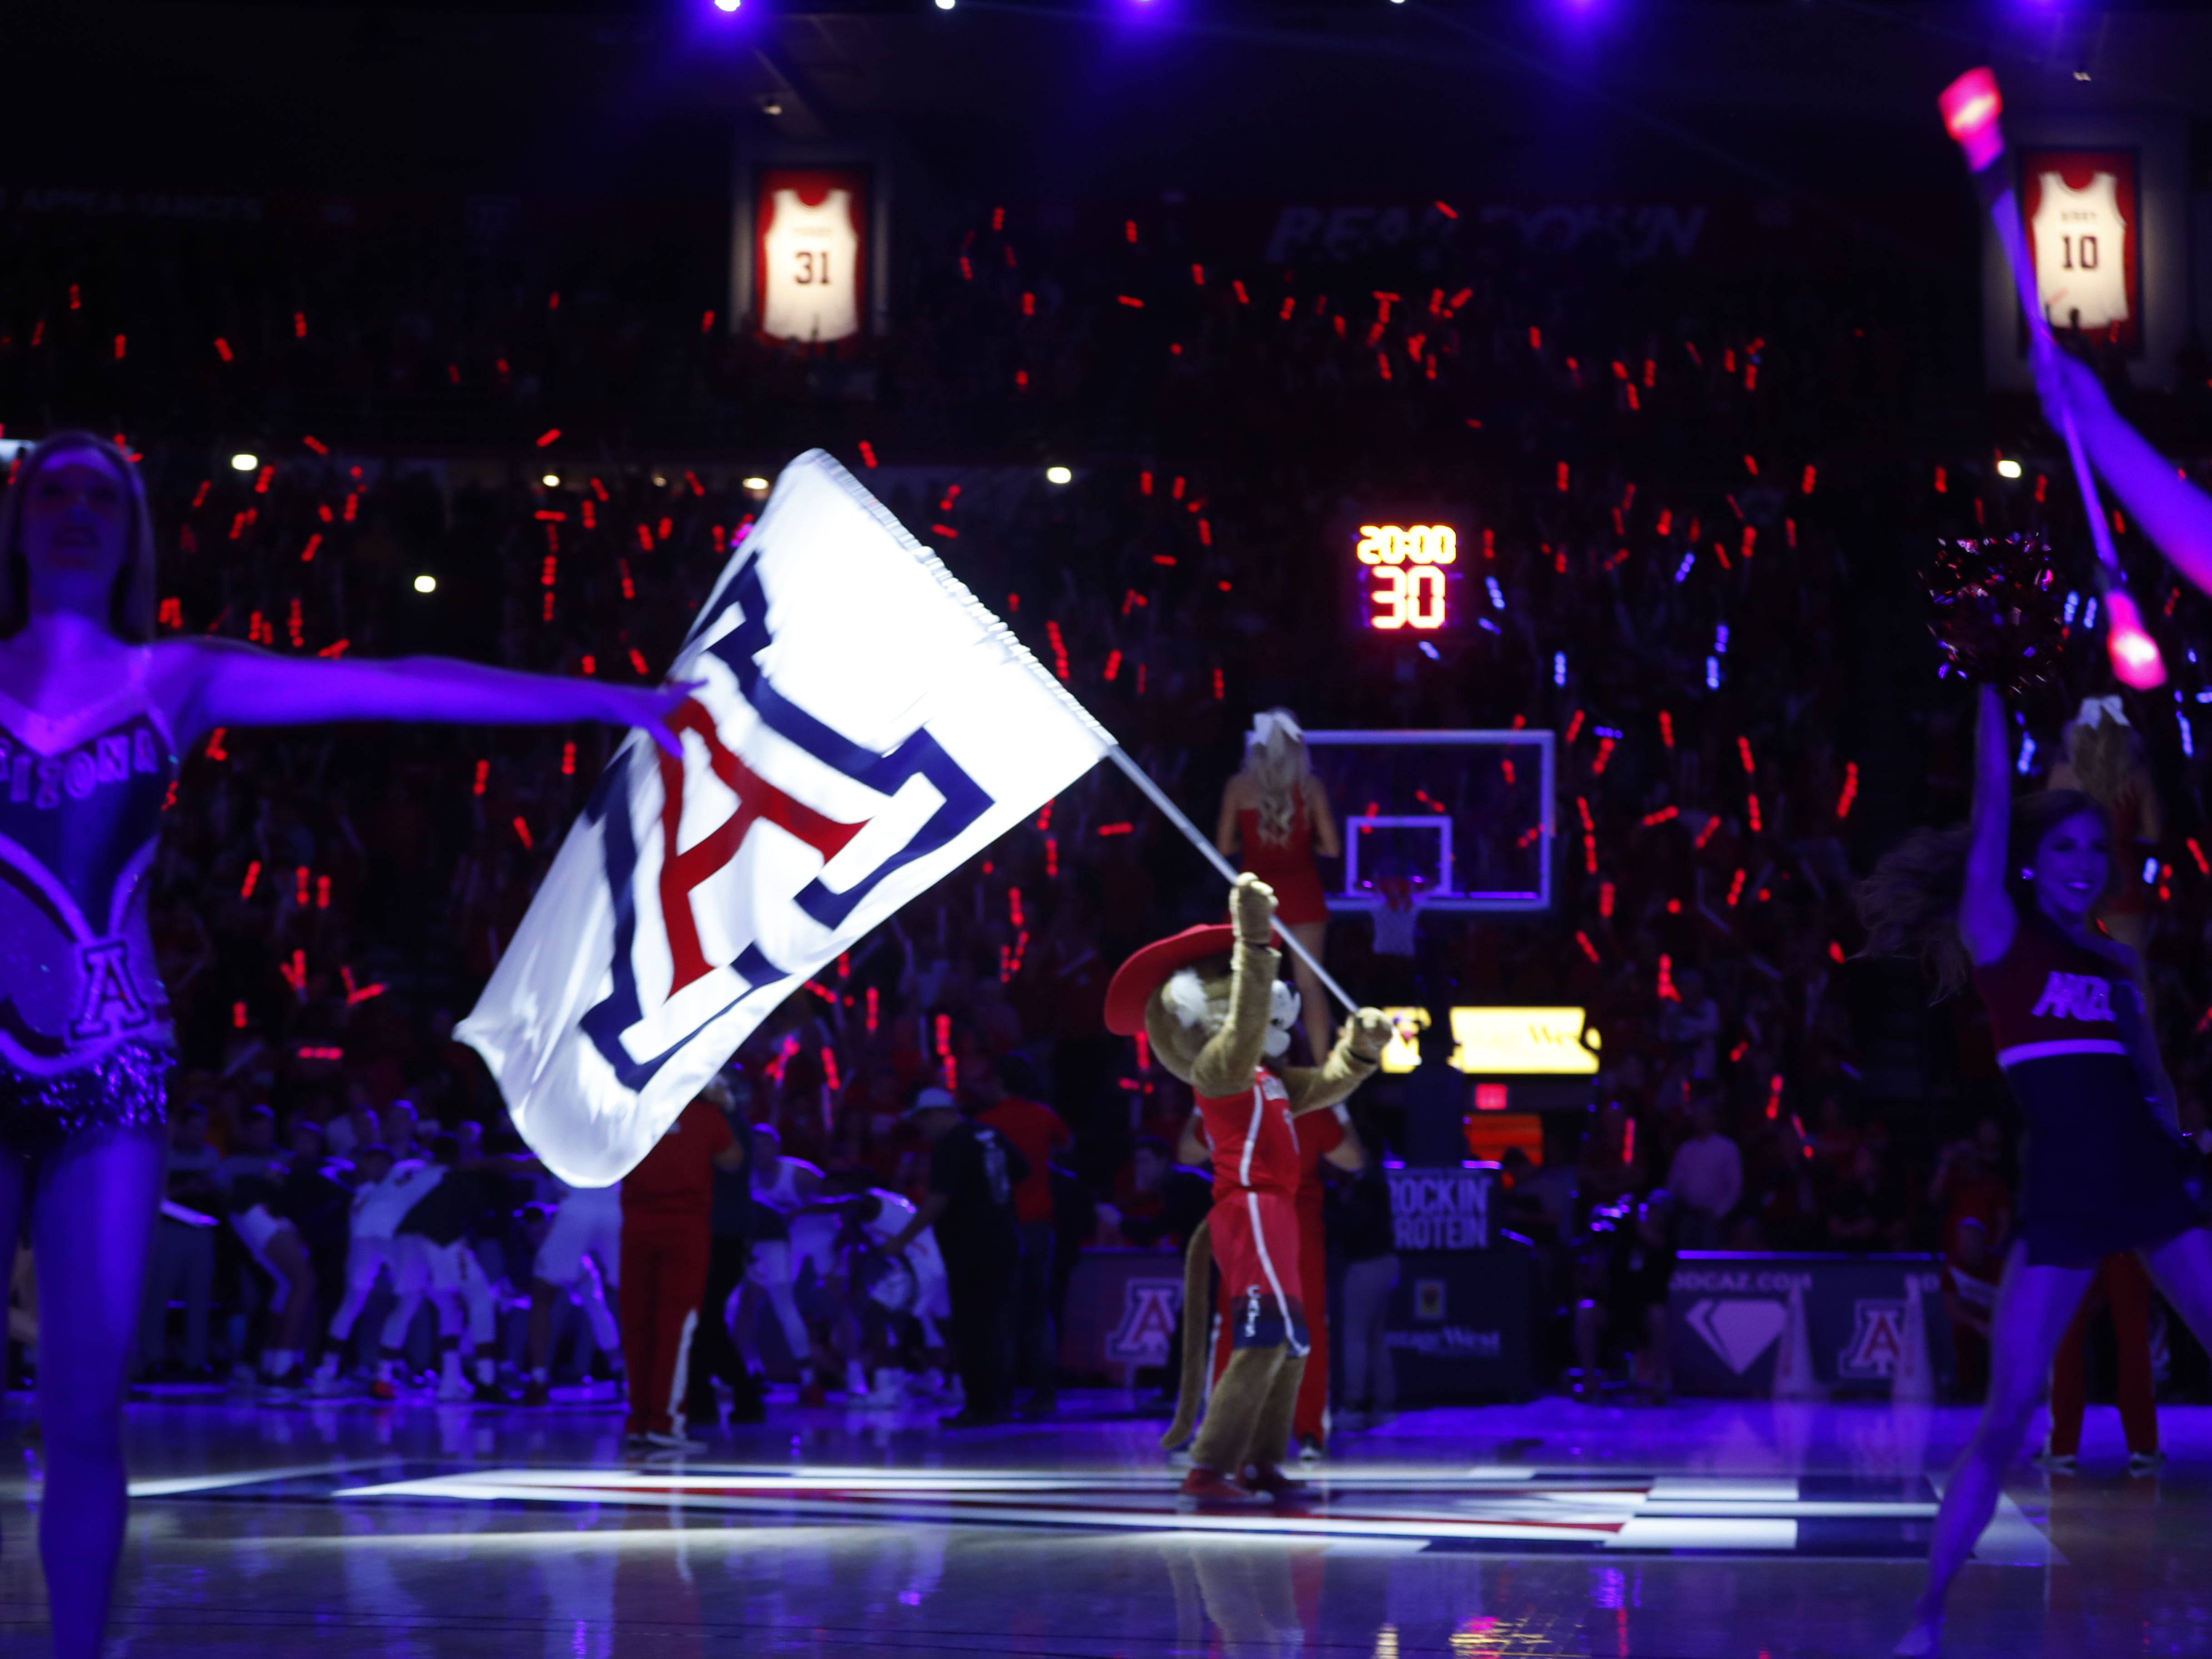 Arizona's mascots and cheerleaders perform during the pregame at the McKale Memorial Center in Tucson, Ariz. on March 9, 2019.